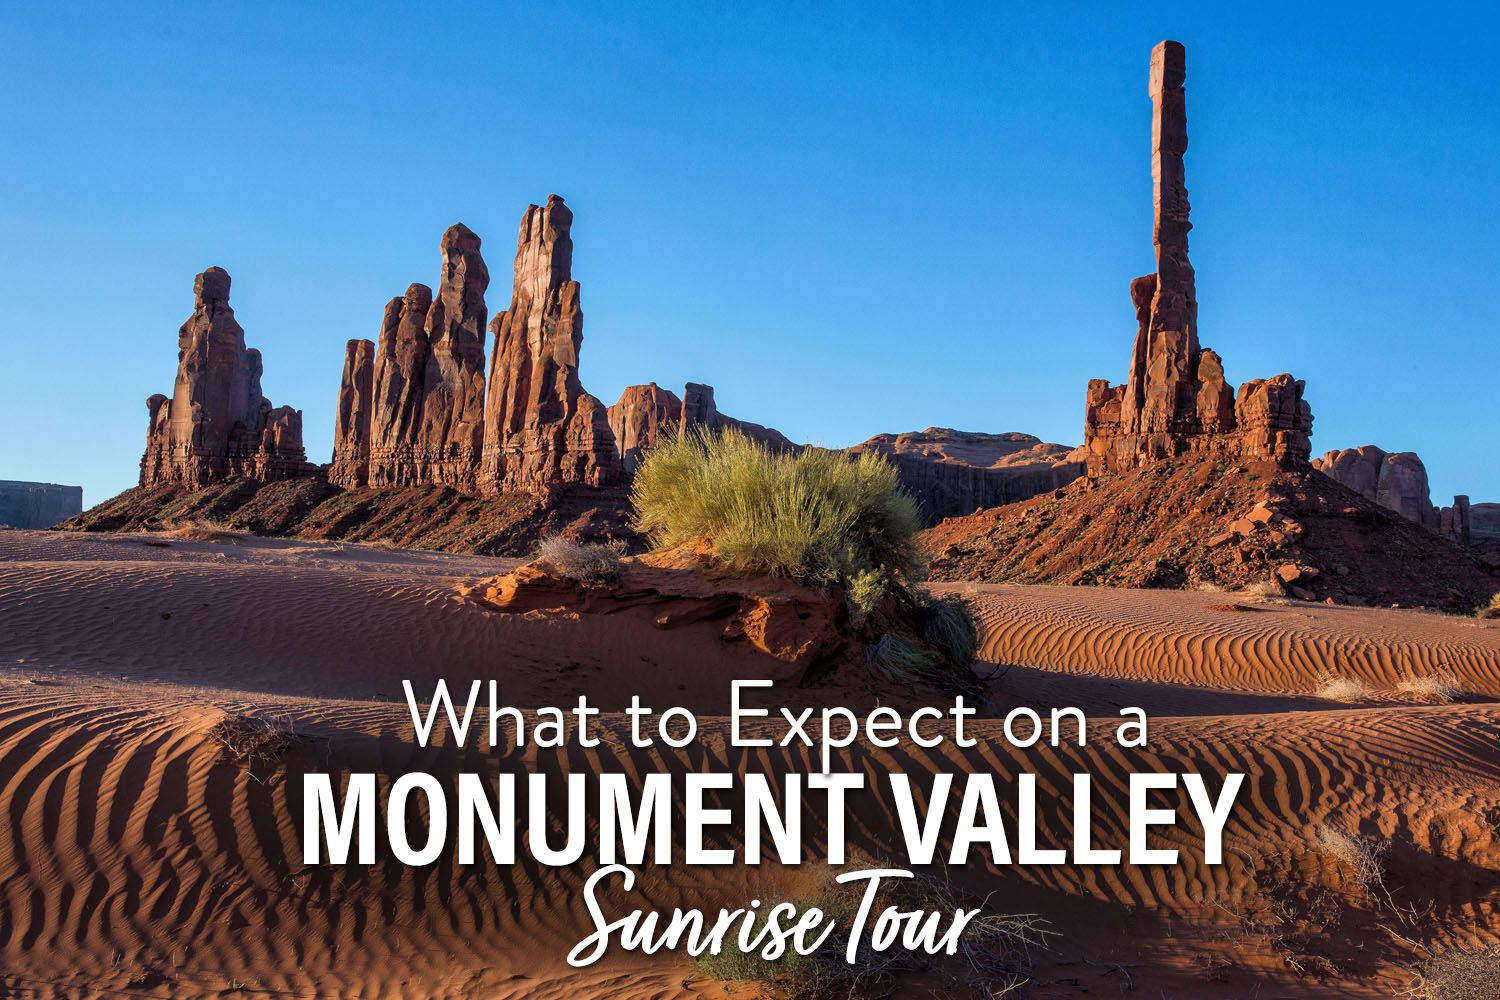 Monument Valley Sunrise Tour